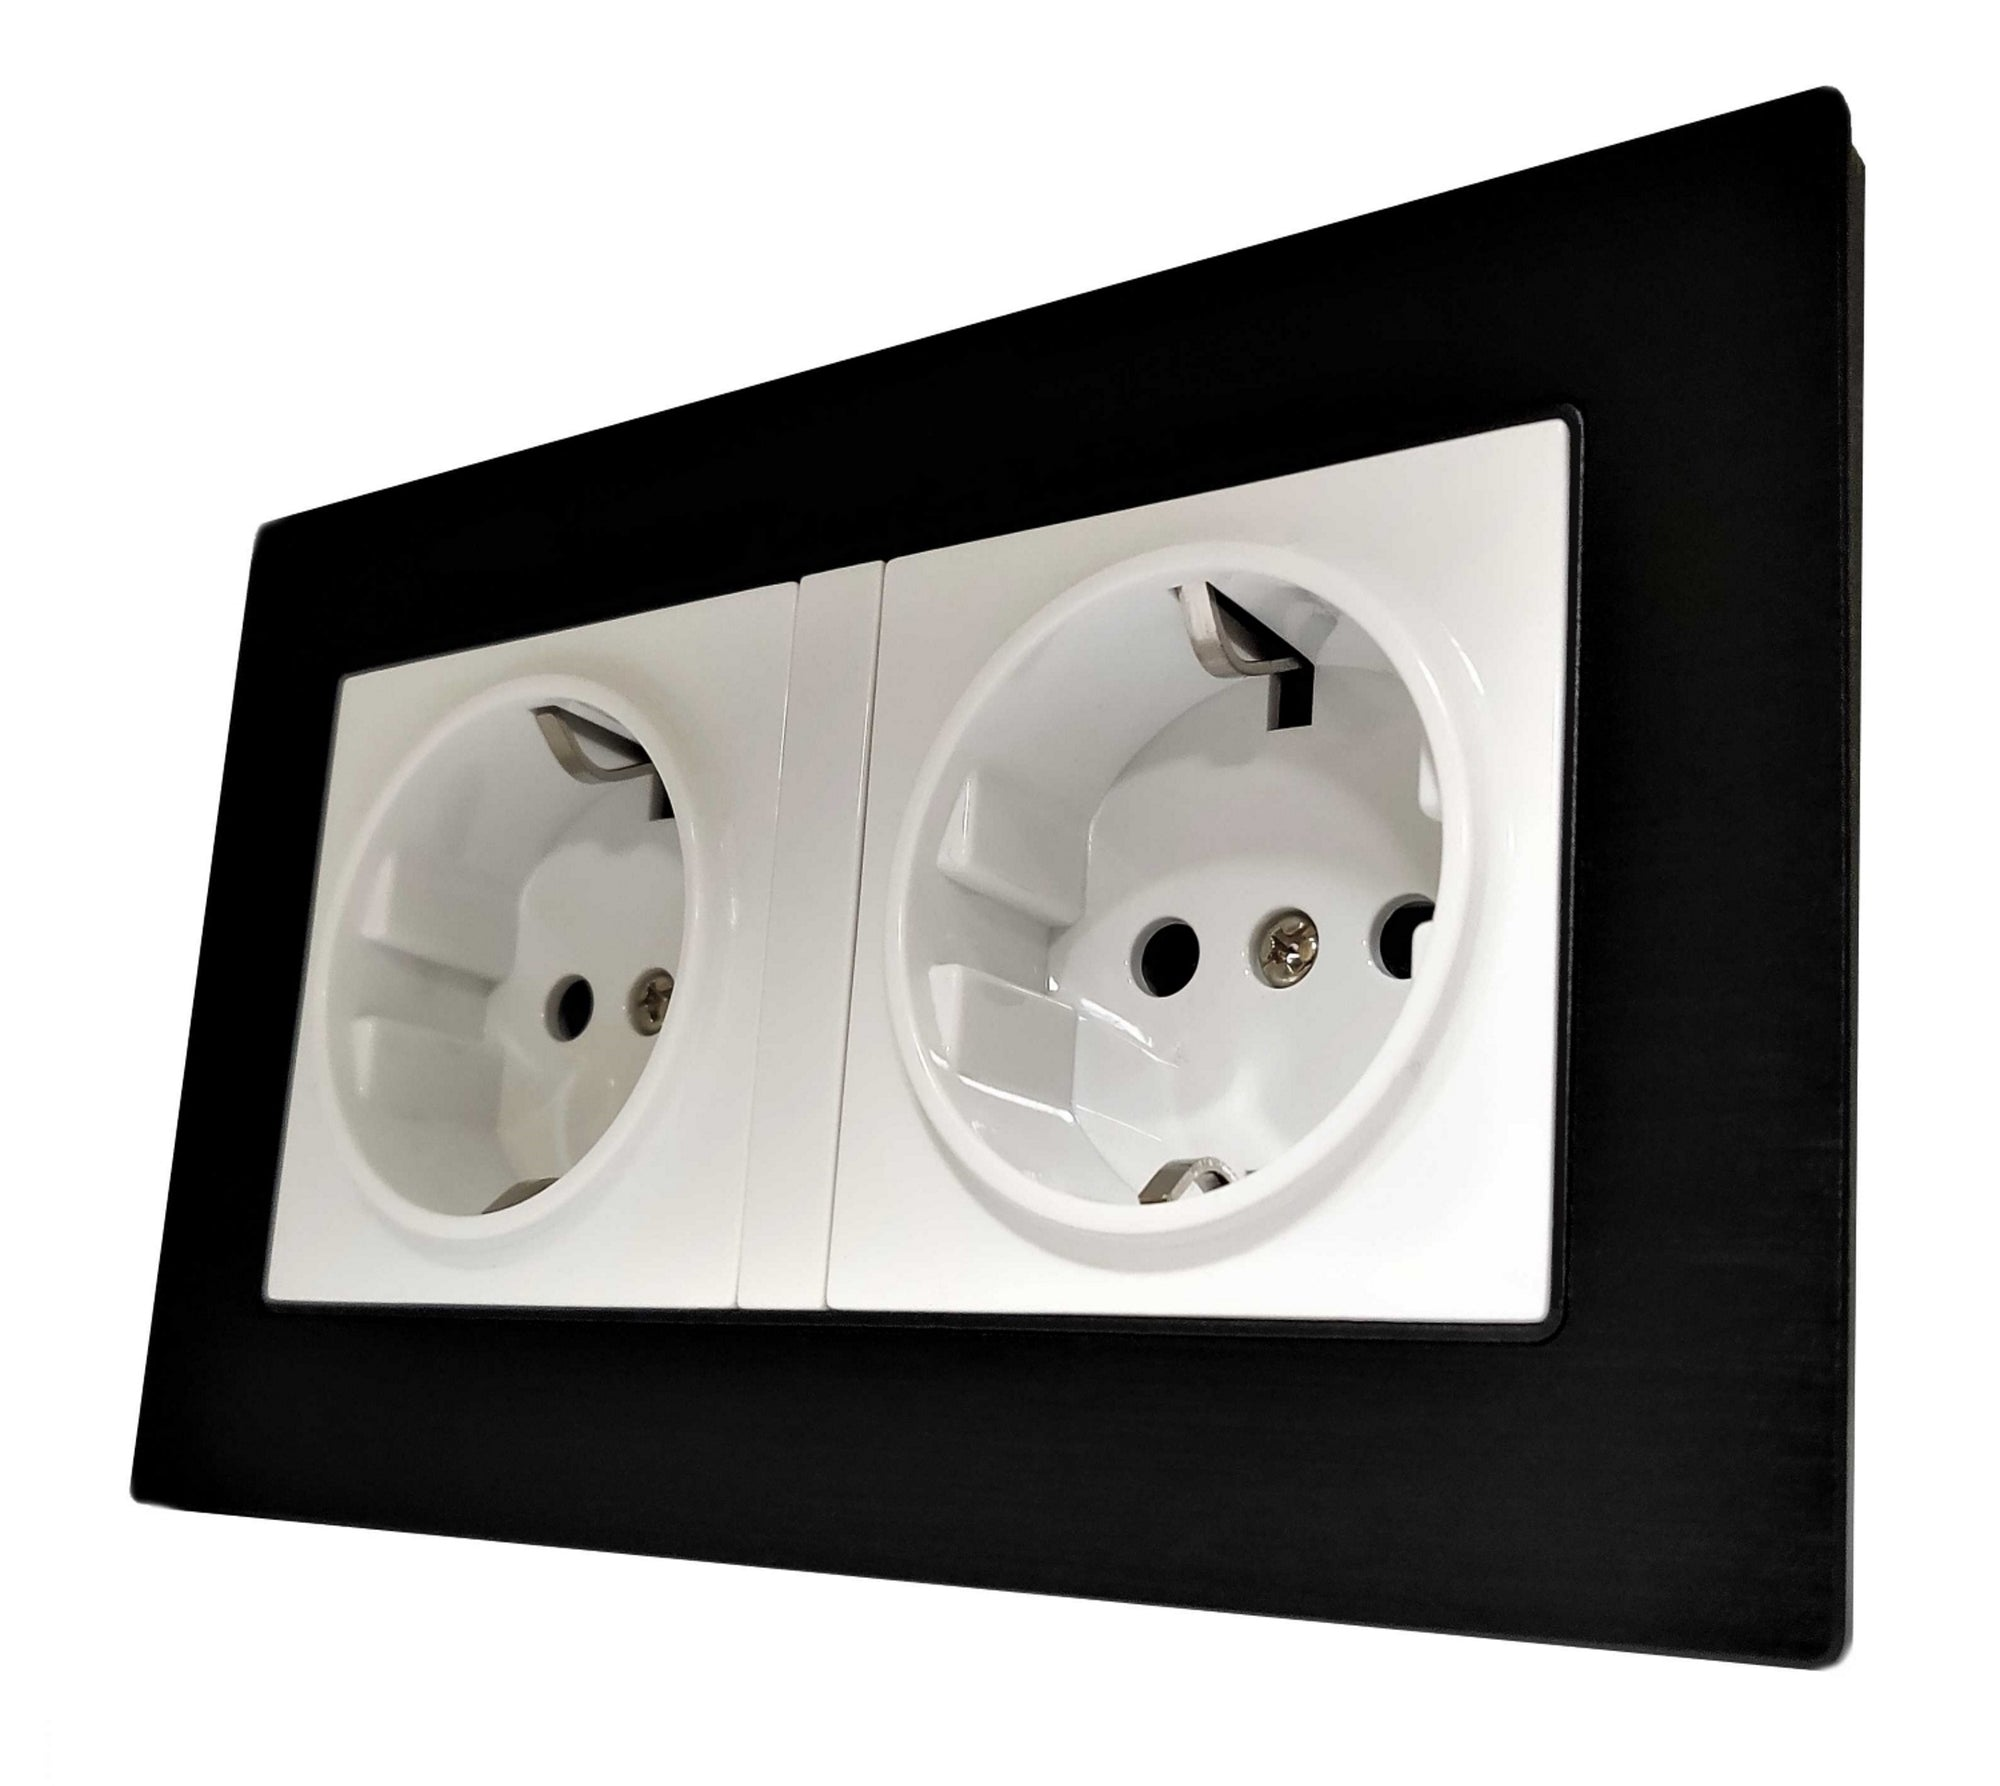 Double Schuko EU 16A 2-Pin AC Wall Power Socket in Black Brushed Alum Frame & White Centre